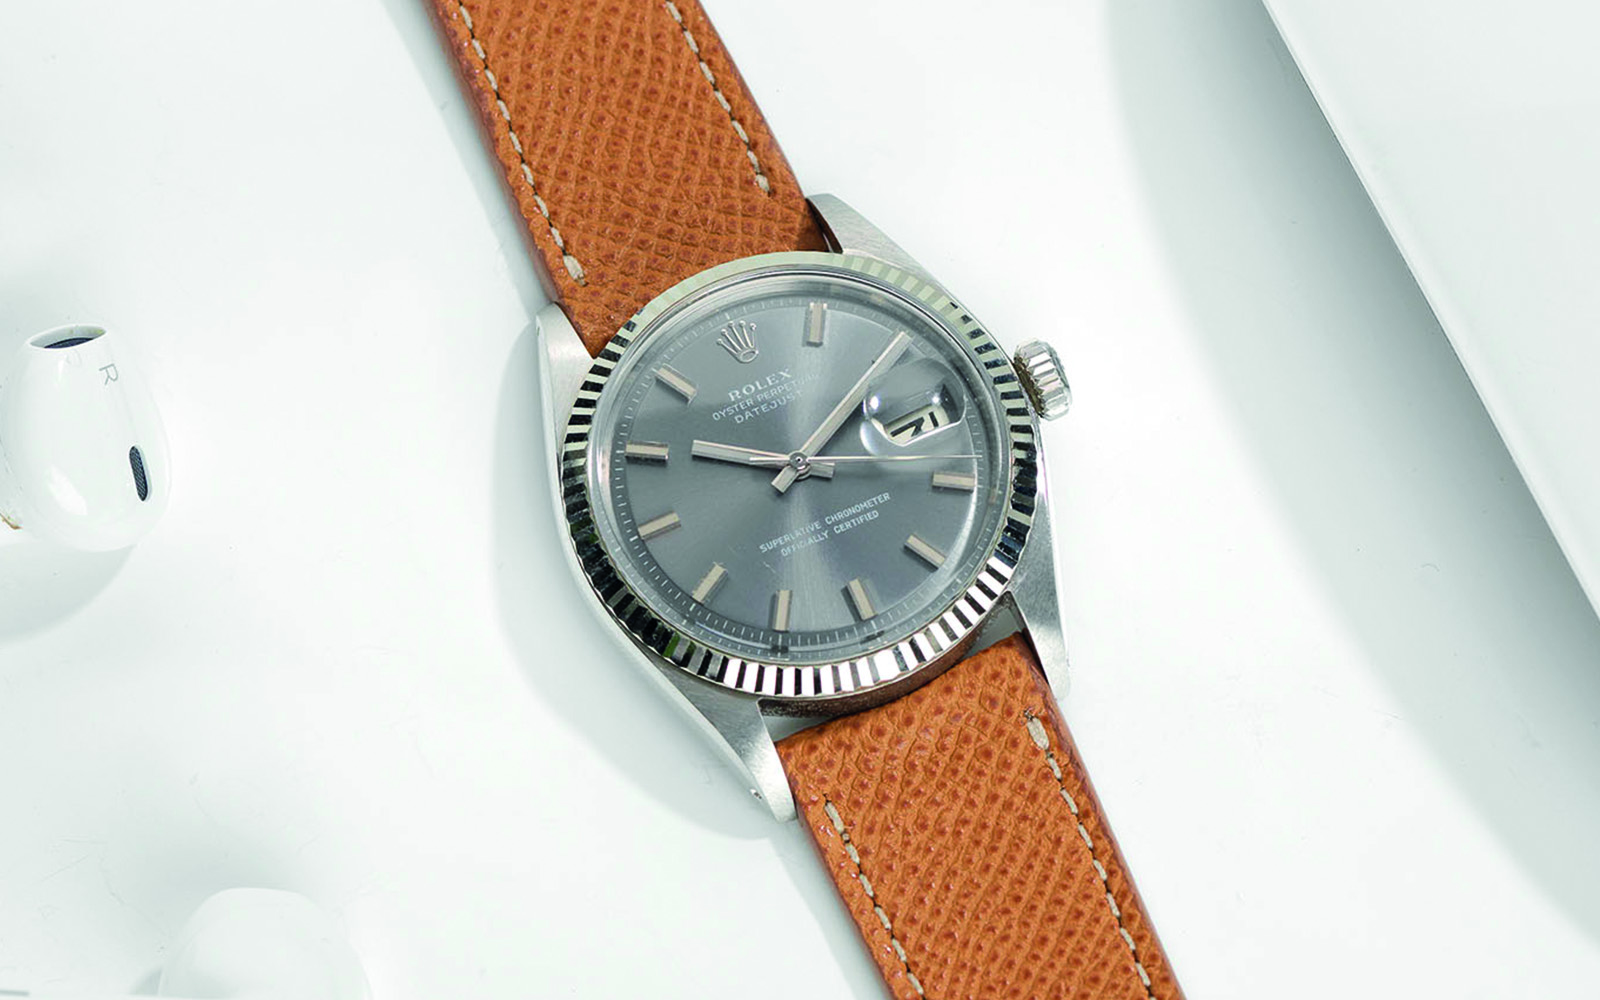 strap guide the rolex datejust grey wideboy bulang and sons rh magazine bulangandsons com Rolex Datejust Diamond Bezel rolex oyster perpetual datejust user guide